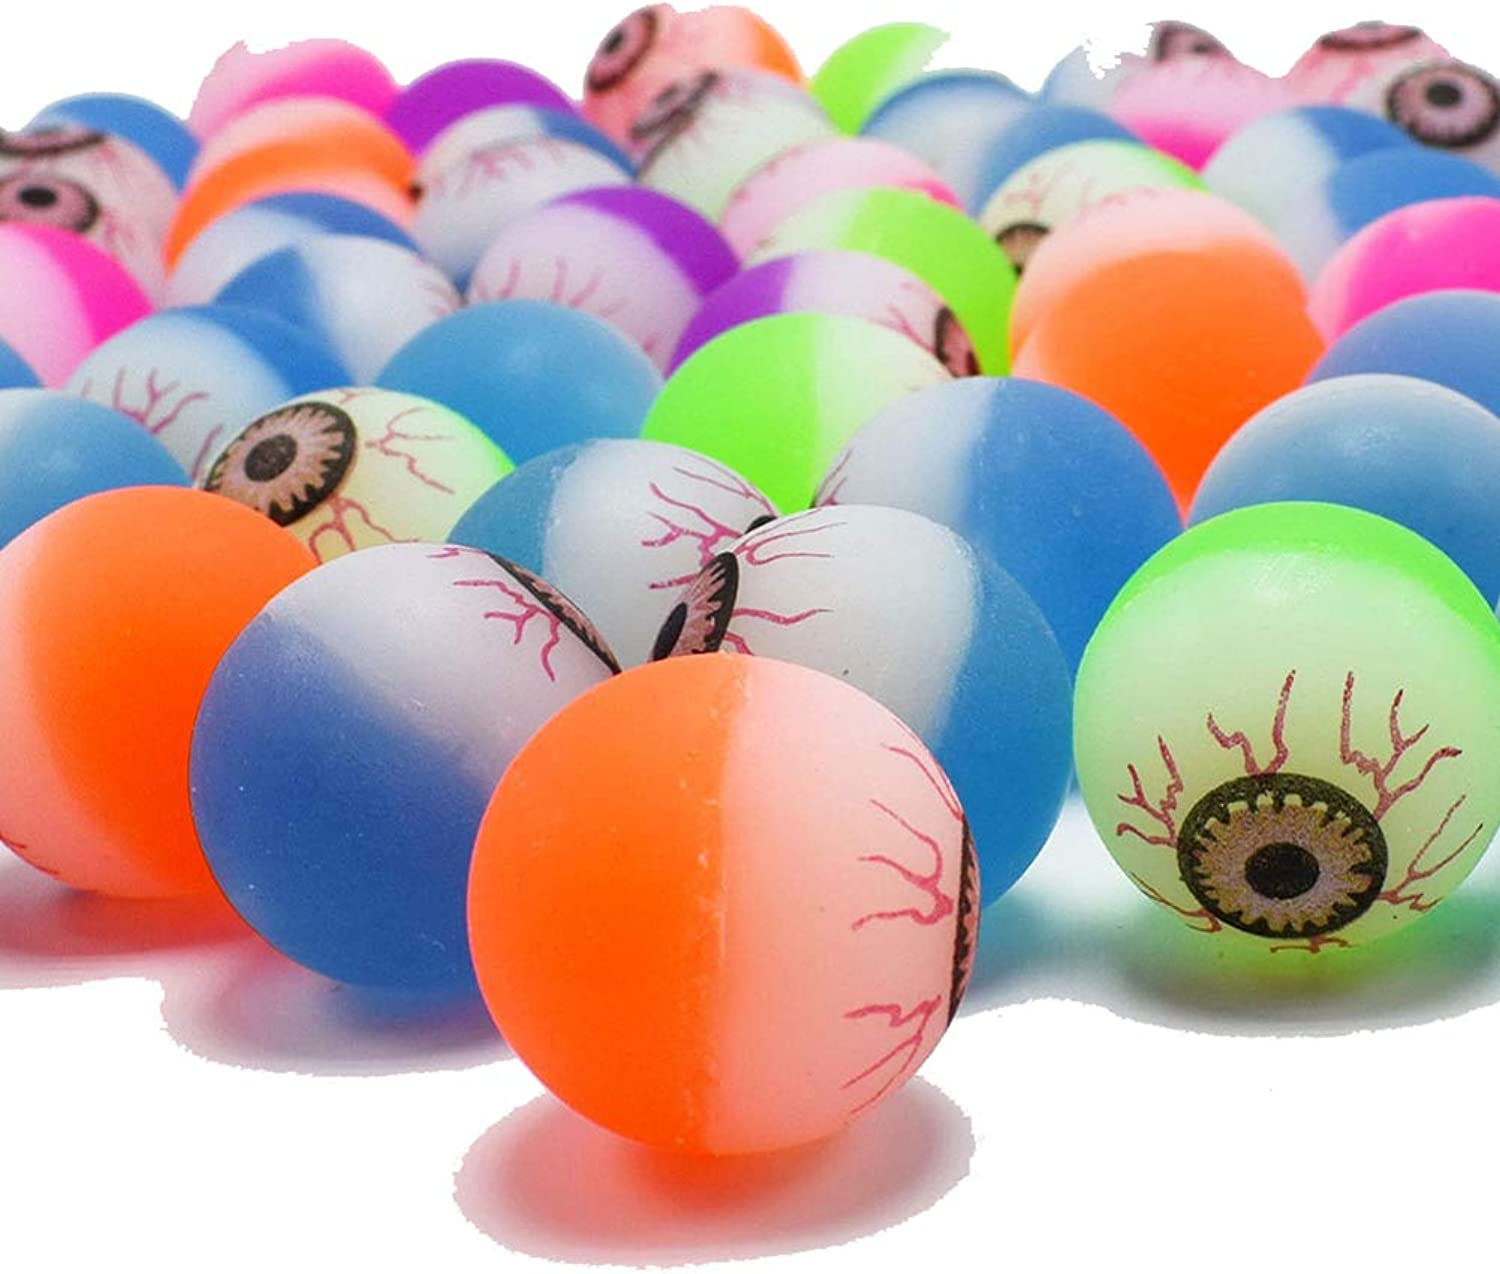 HUPLUE Eyeball Bouncy Balls Small colorful Magic Bounce Balls for Halloween Themed Party Favors Assorted colors 1.2 inches in Diameter 100Pcs